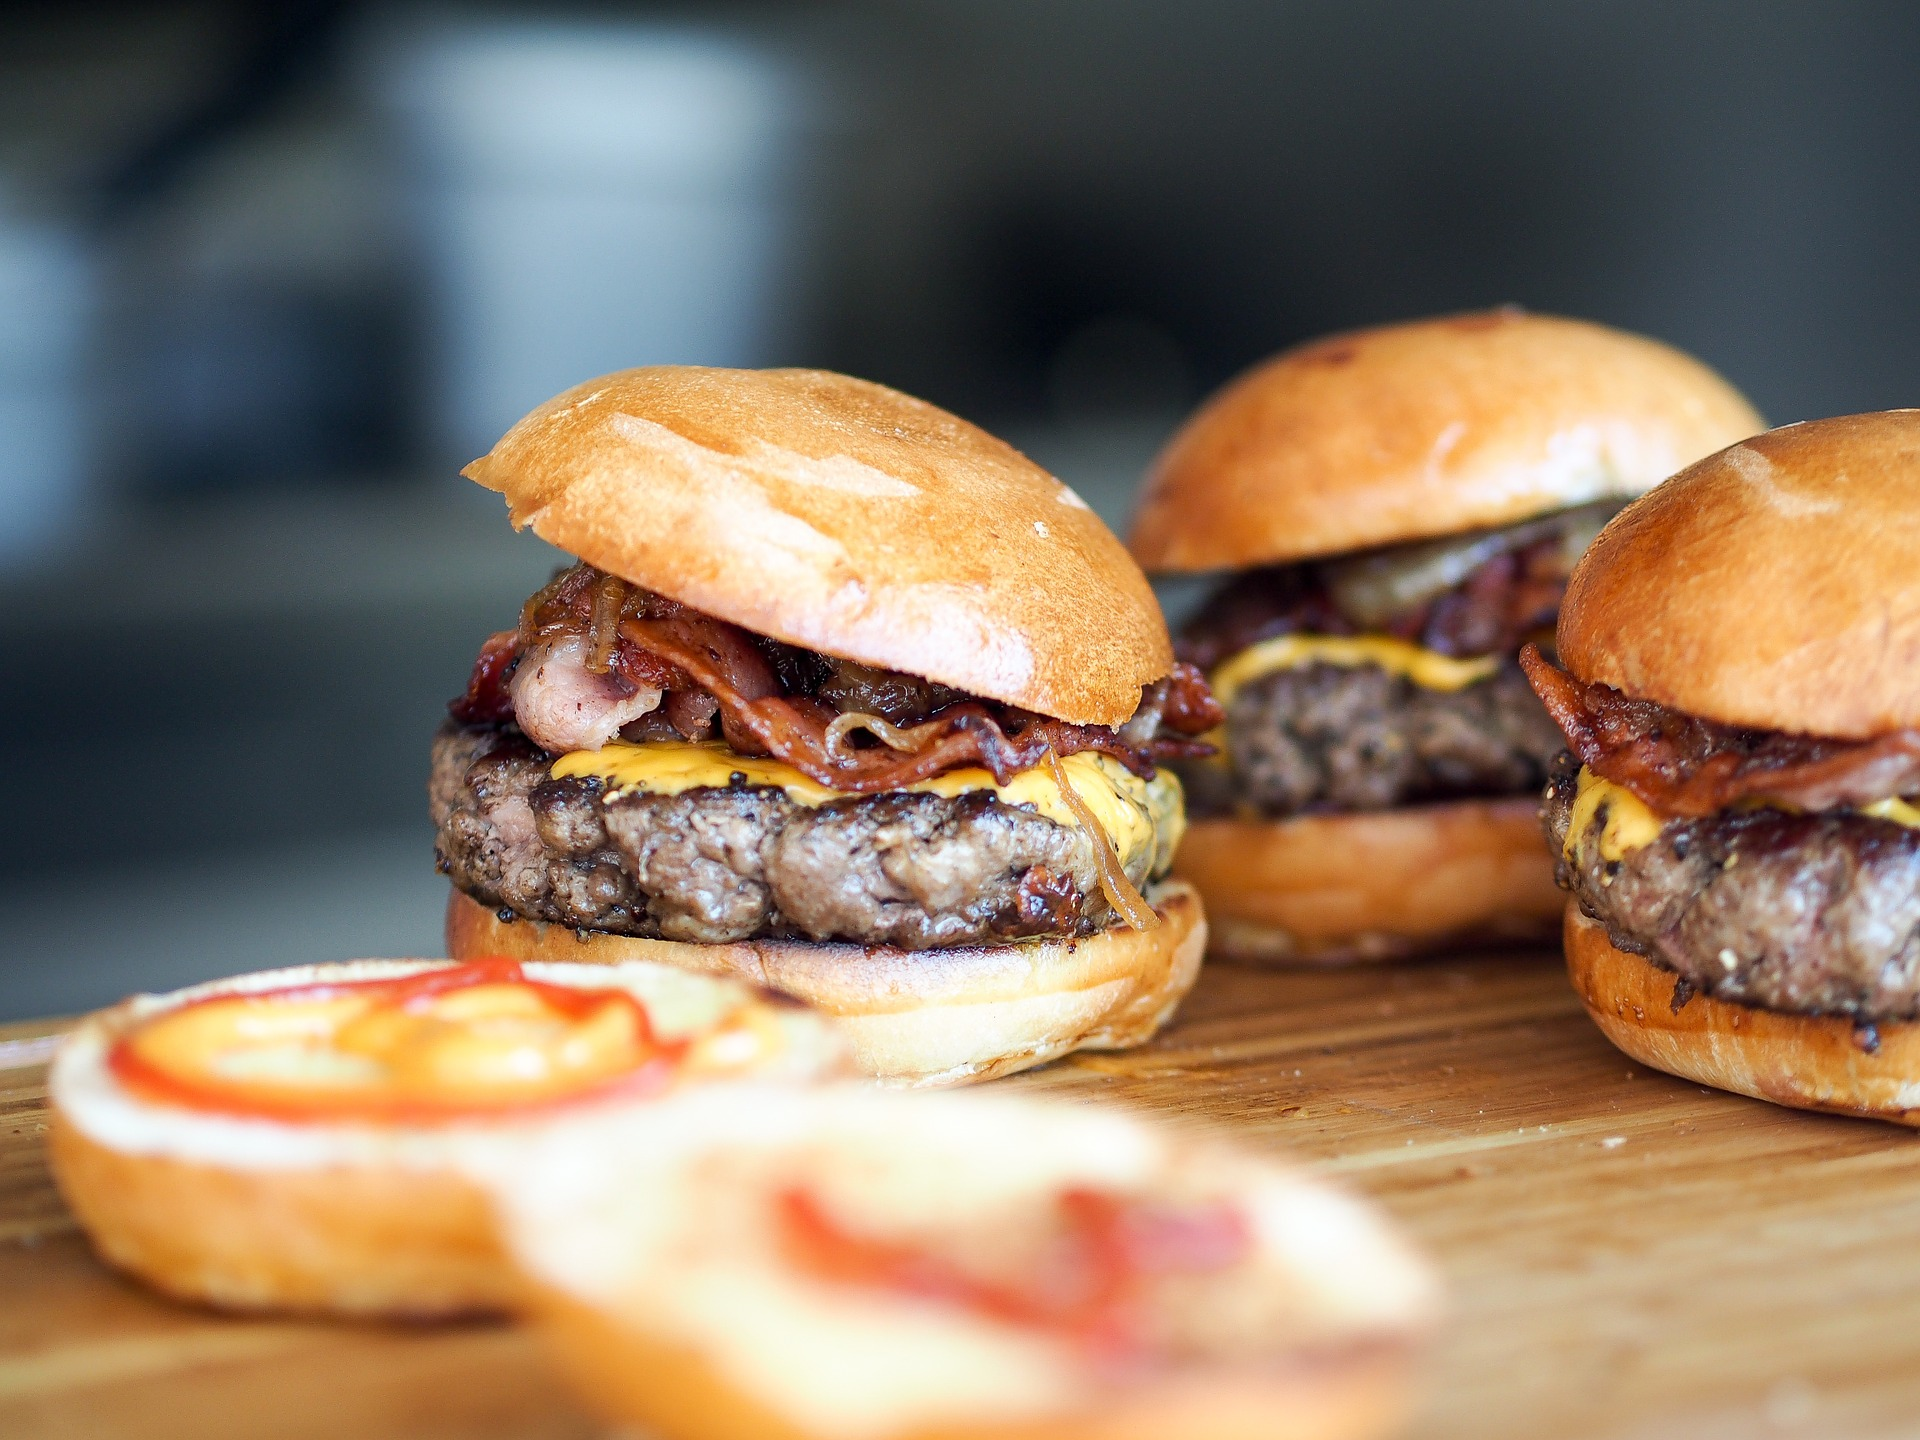 Enjoy a savory burger while dining on the outdoor patio of Picnickins.